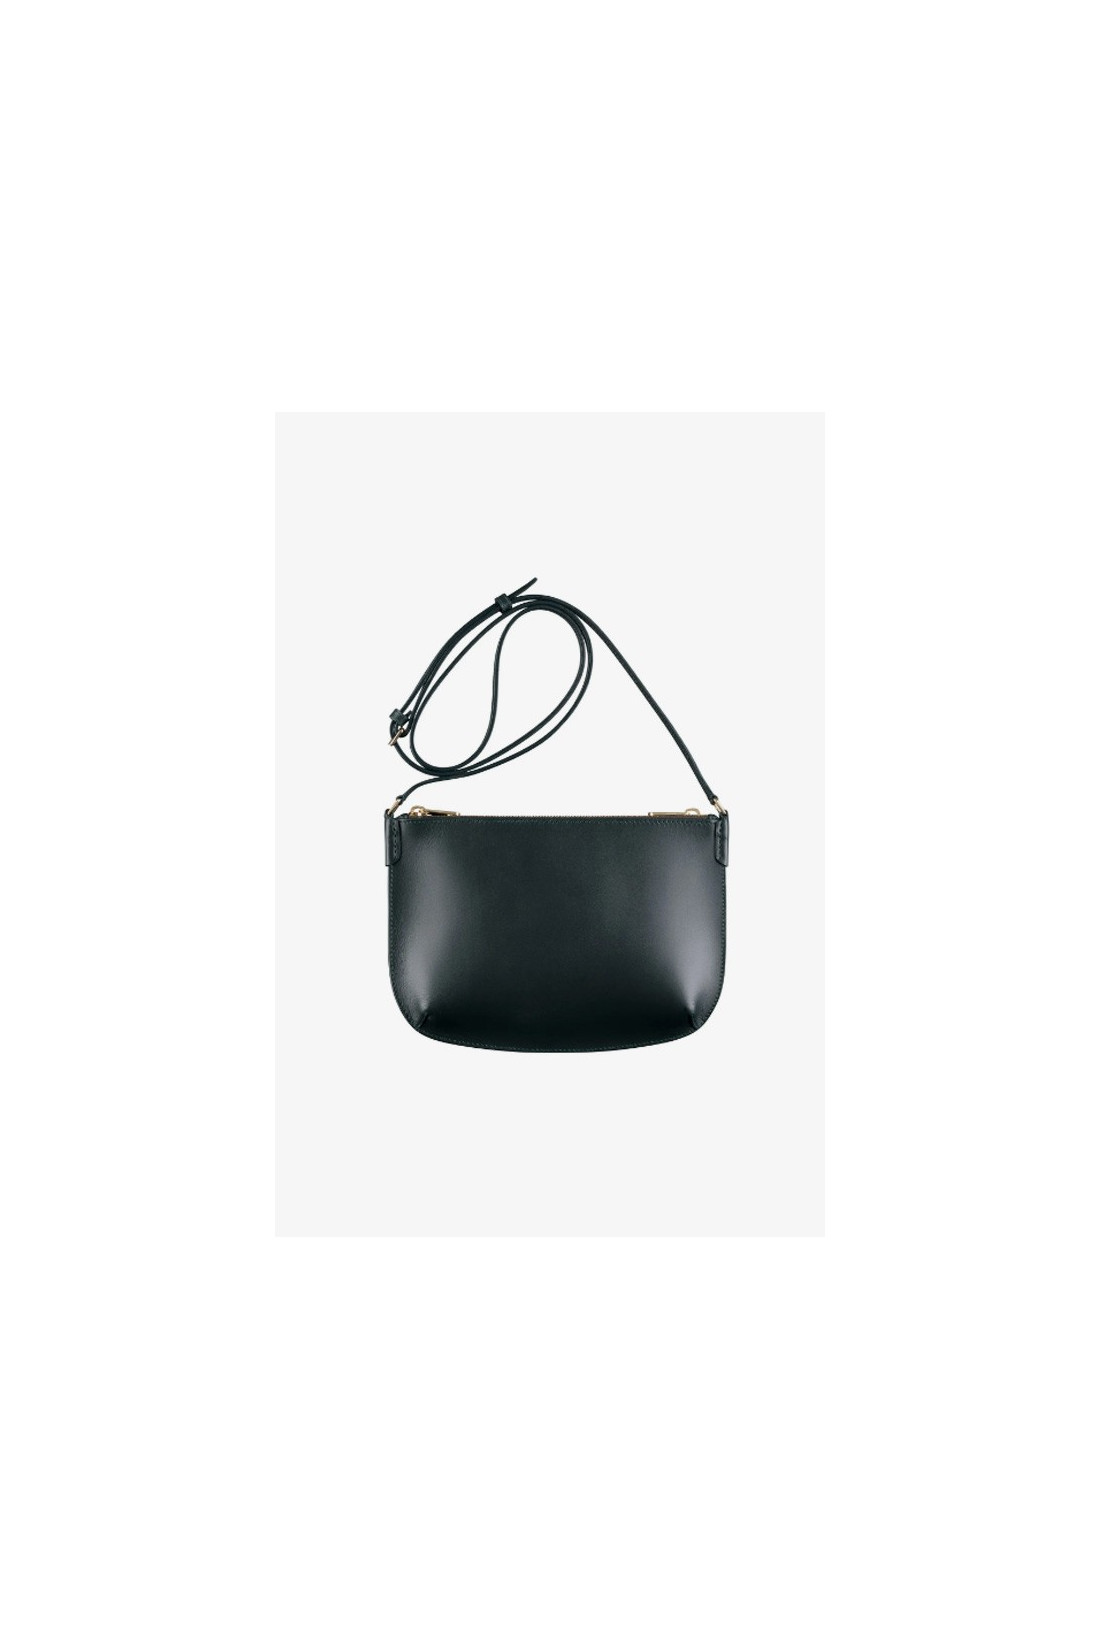 A.P.C. FOR WOMAN / Sac sarah Foret